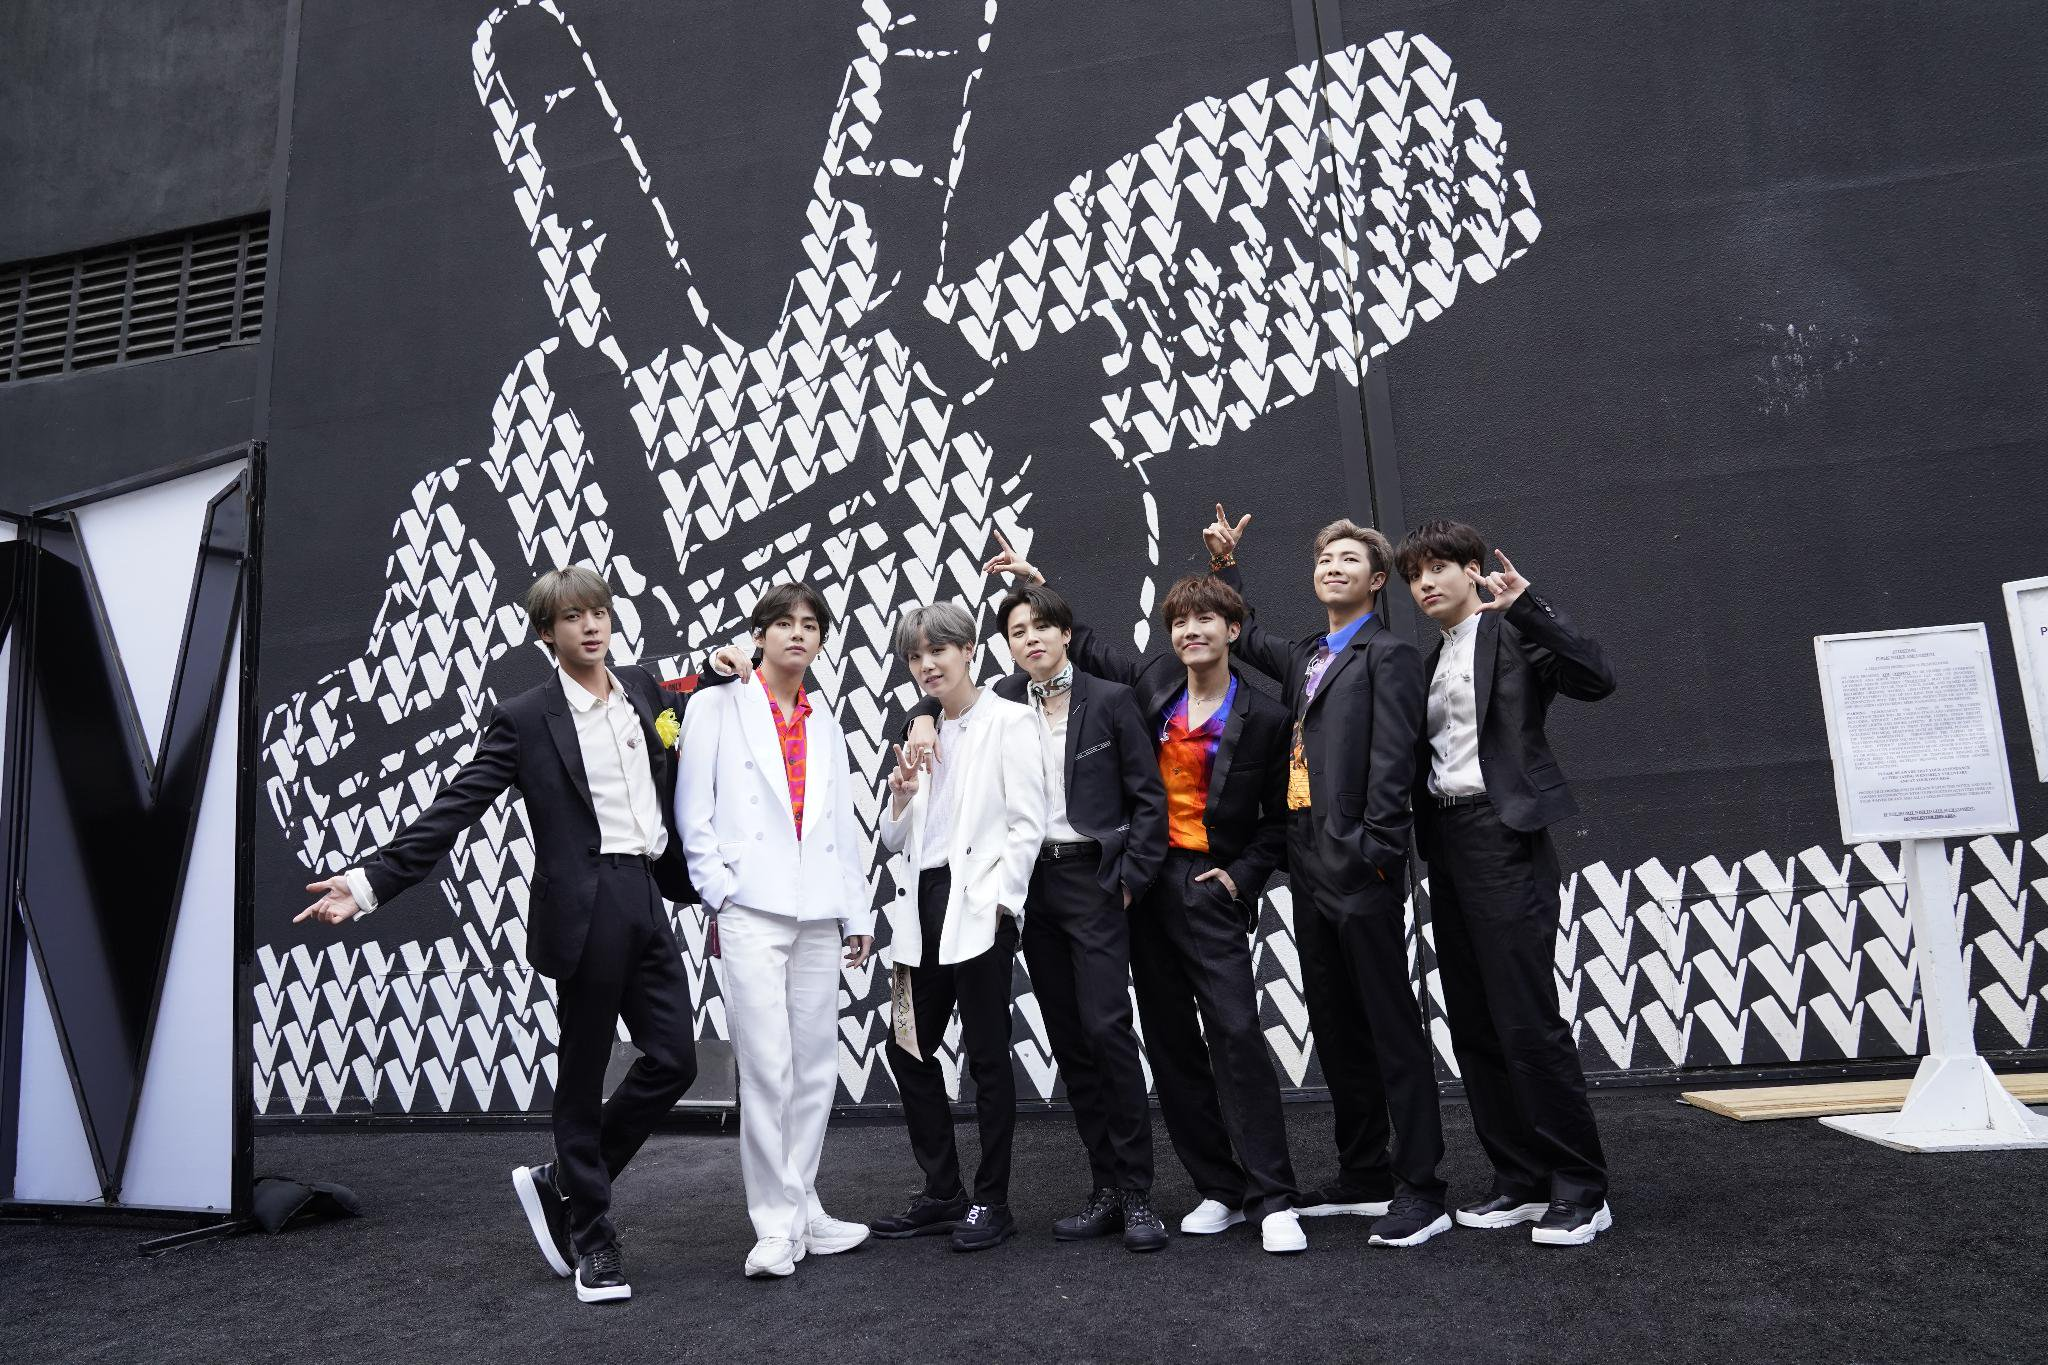 BTS lights up the stage on